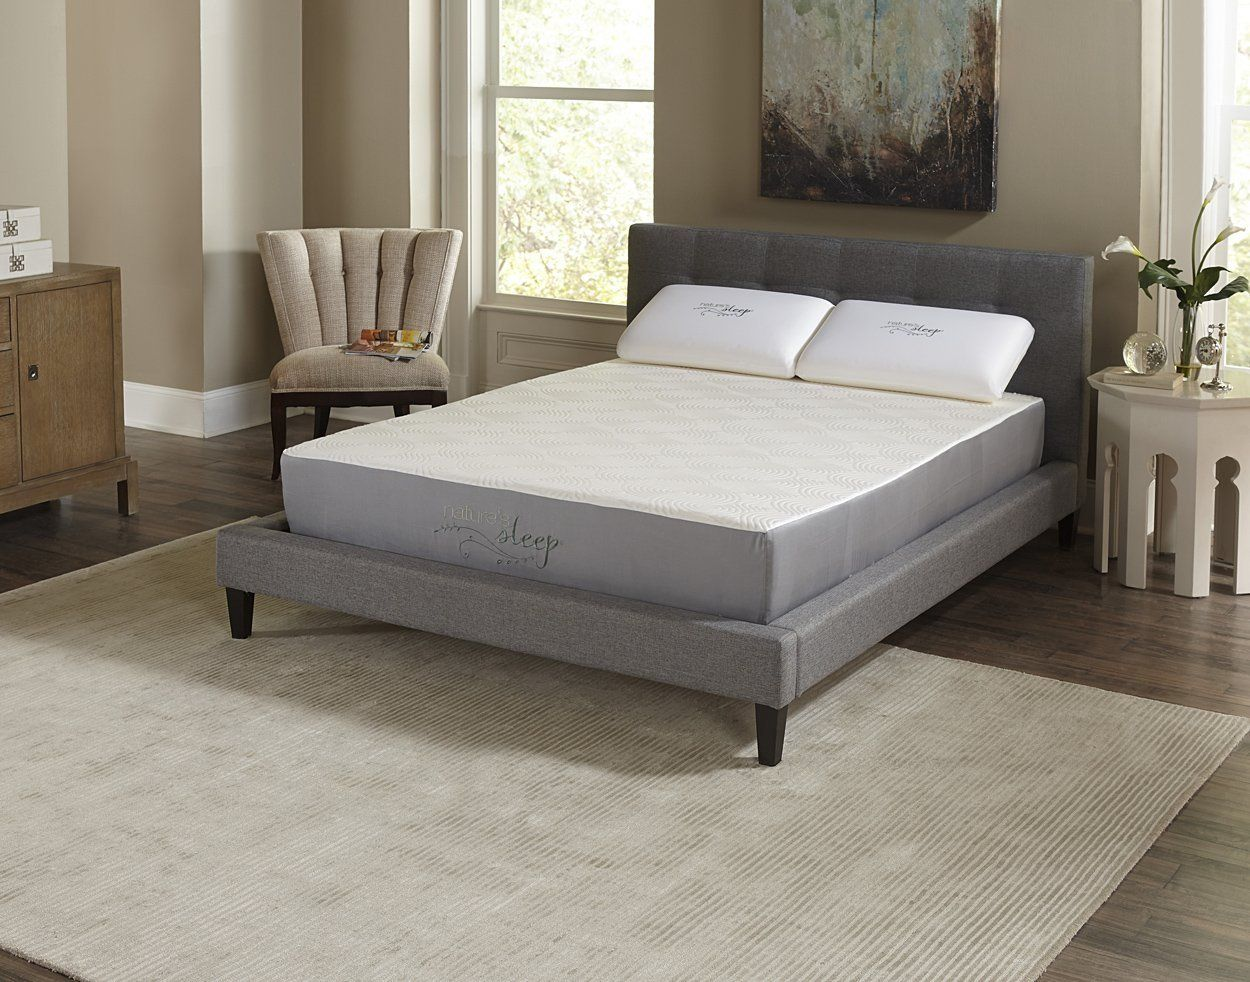 Nature S Sleep 10 Gel Memory Foam Mattress King Review More Details Here This Is An Amazon Affiliate Link I May Earn Commission Fr Mattress Bedroom Furniture Home Decor